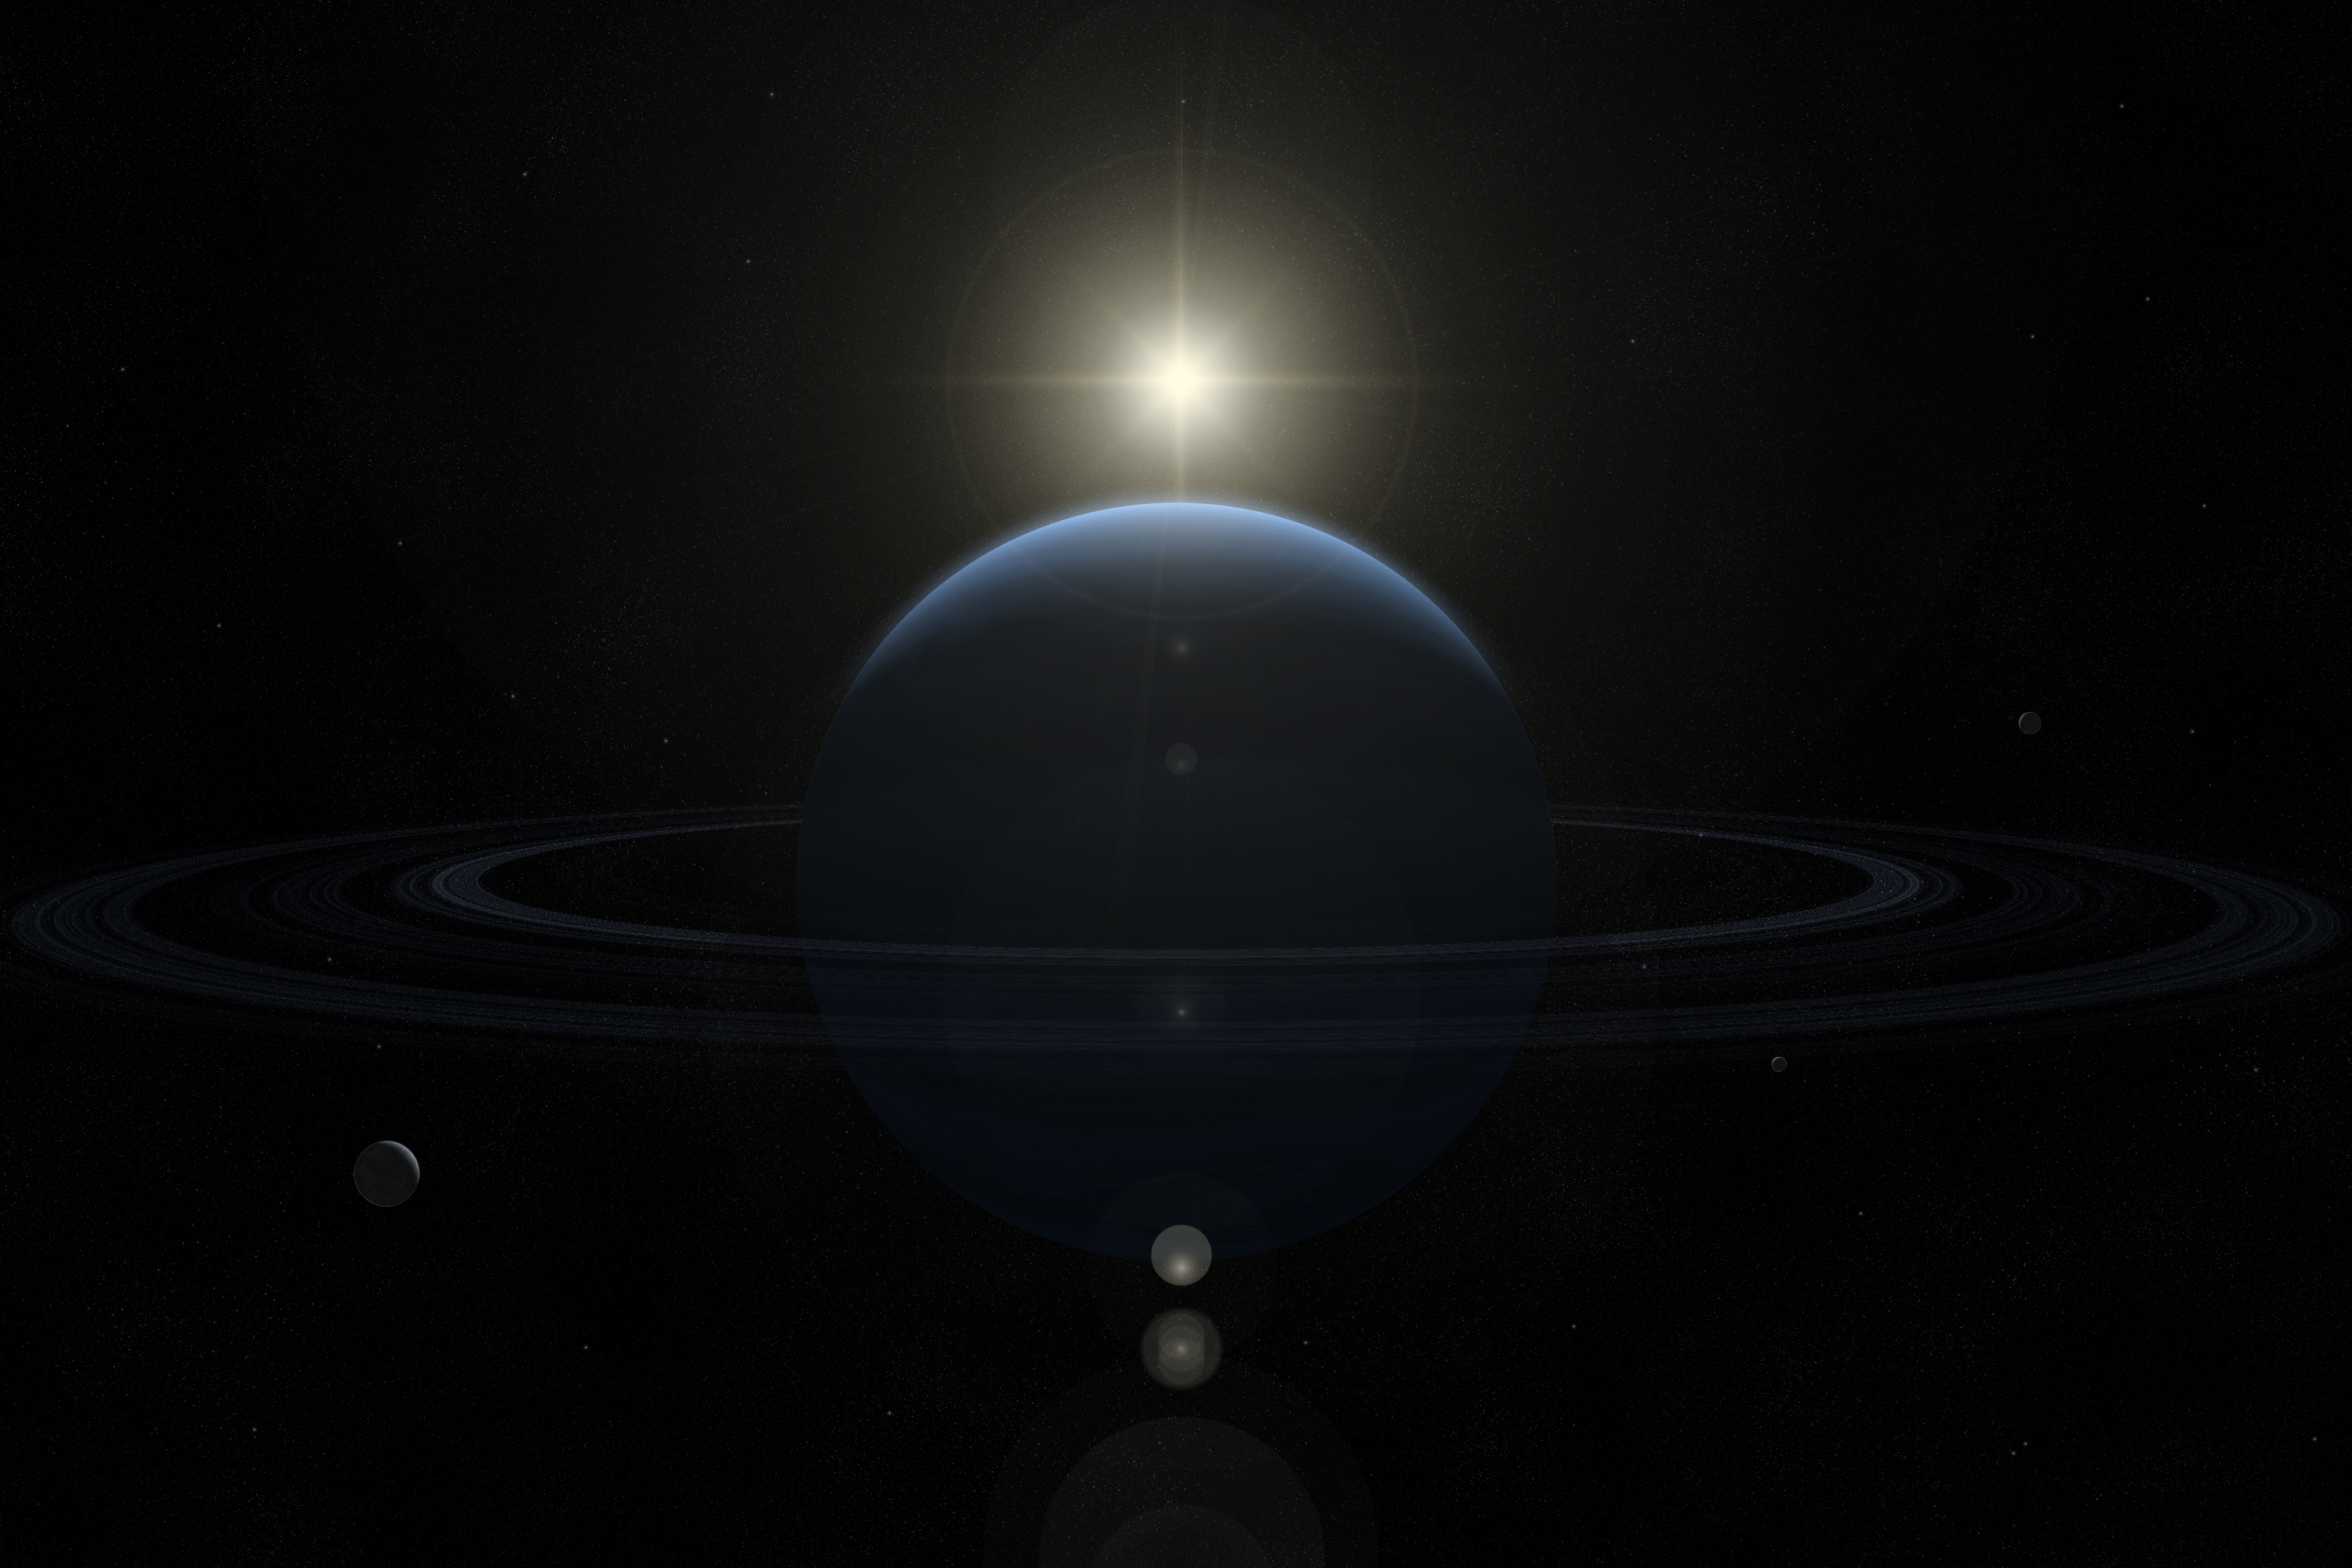 Best Wallpaper Of Neptune, Image Of The Gas Giant, Rings